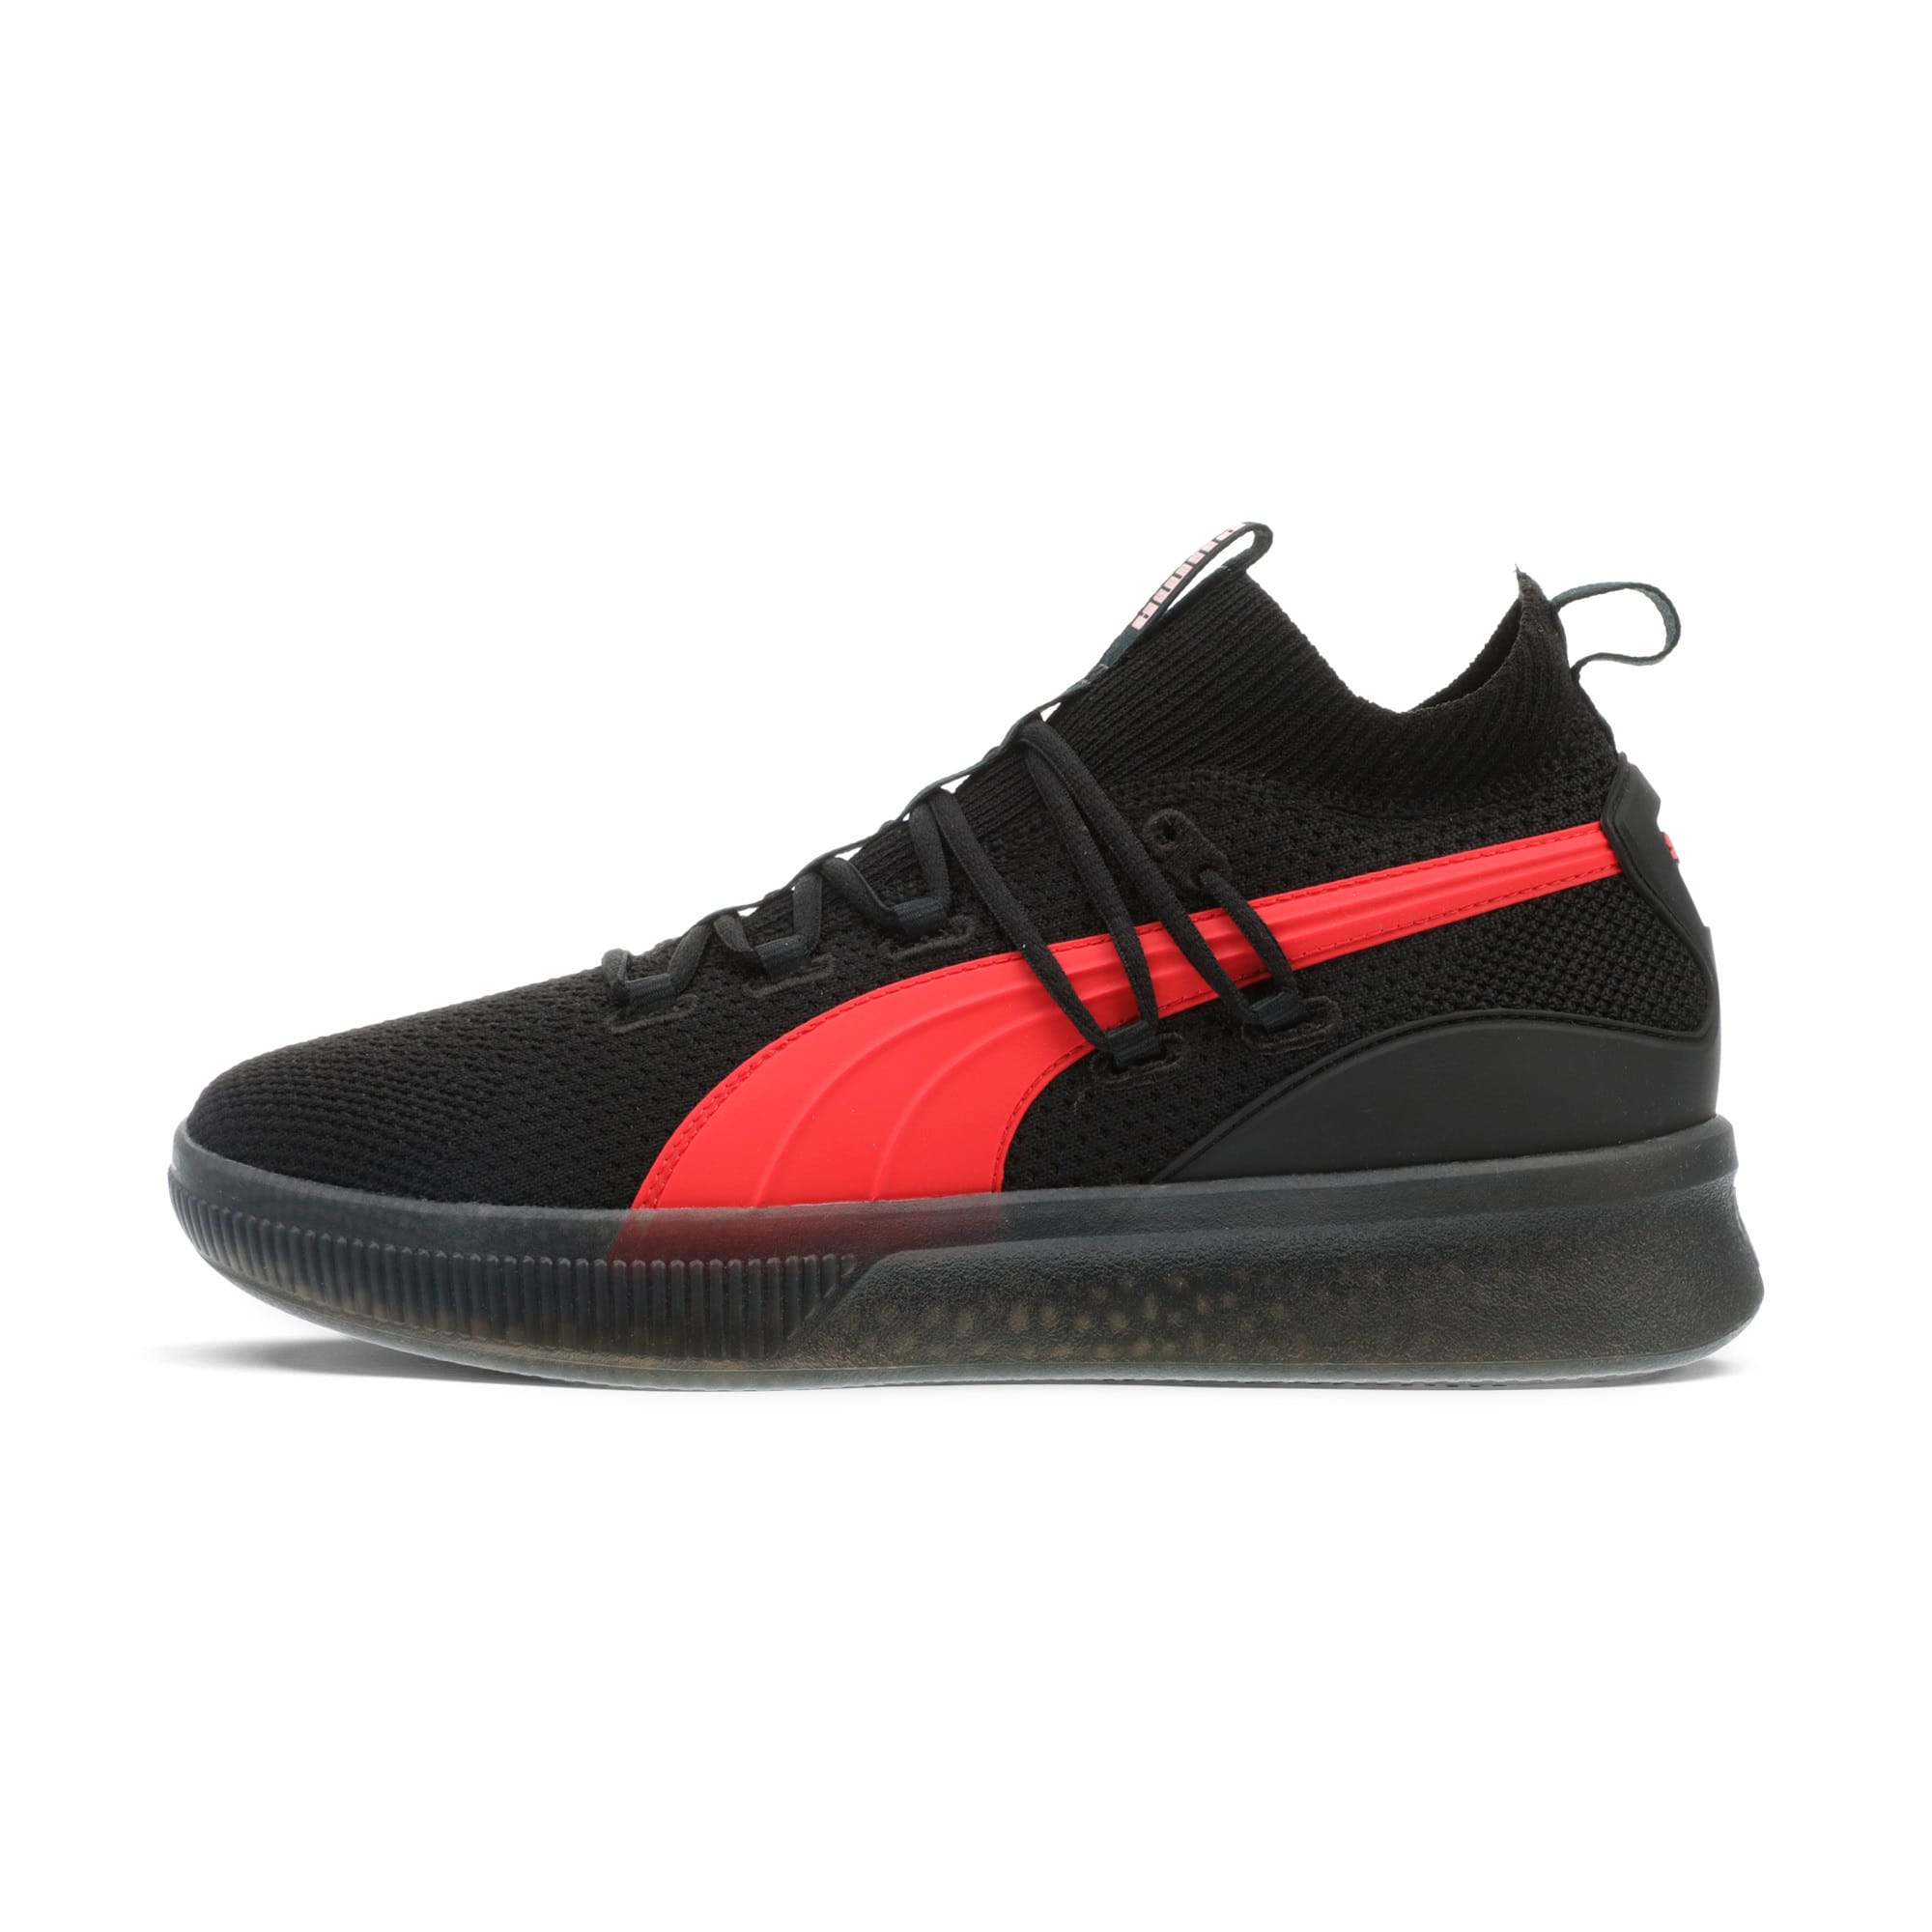 Thumbnail 1 of Clyde Court Core Basketball Shoes, Puma Black-High Risk Red, medium